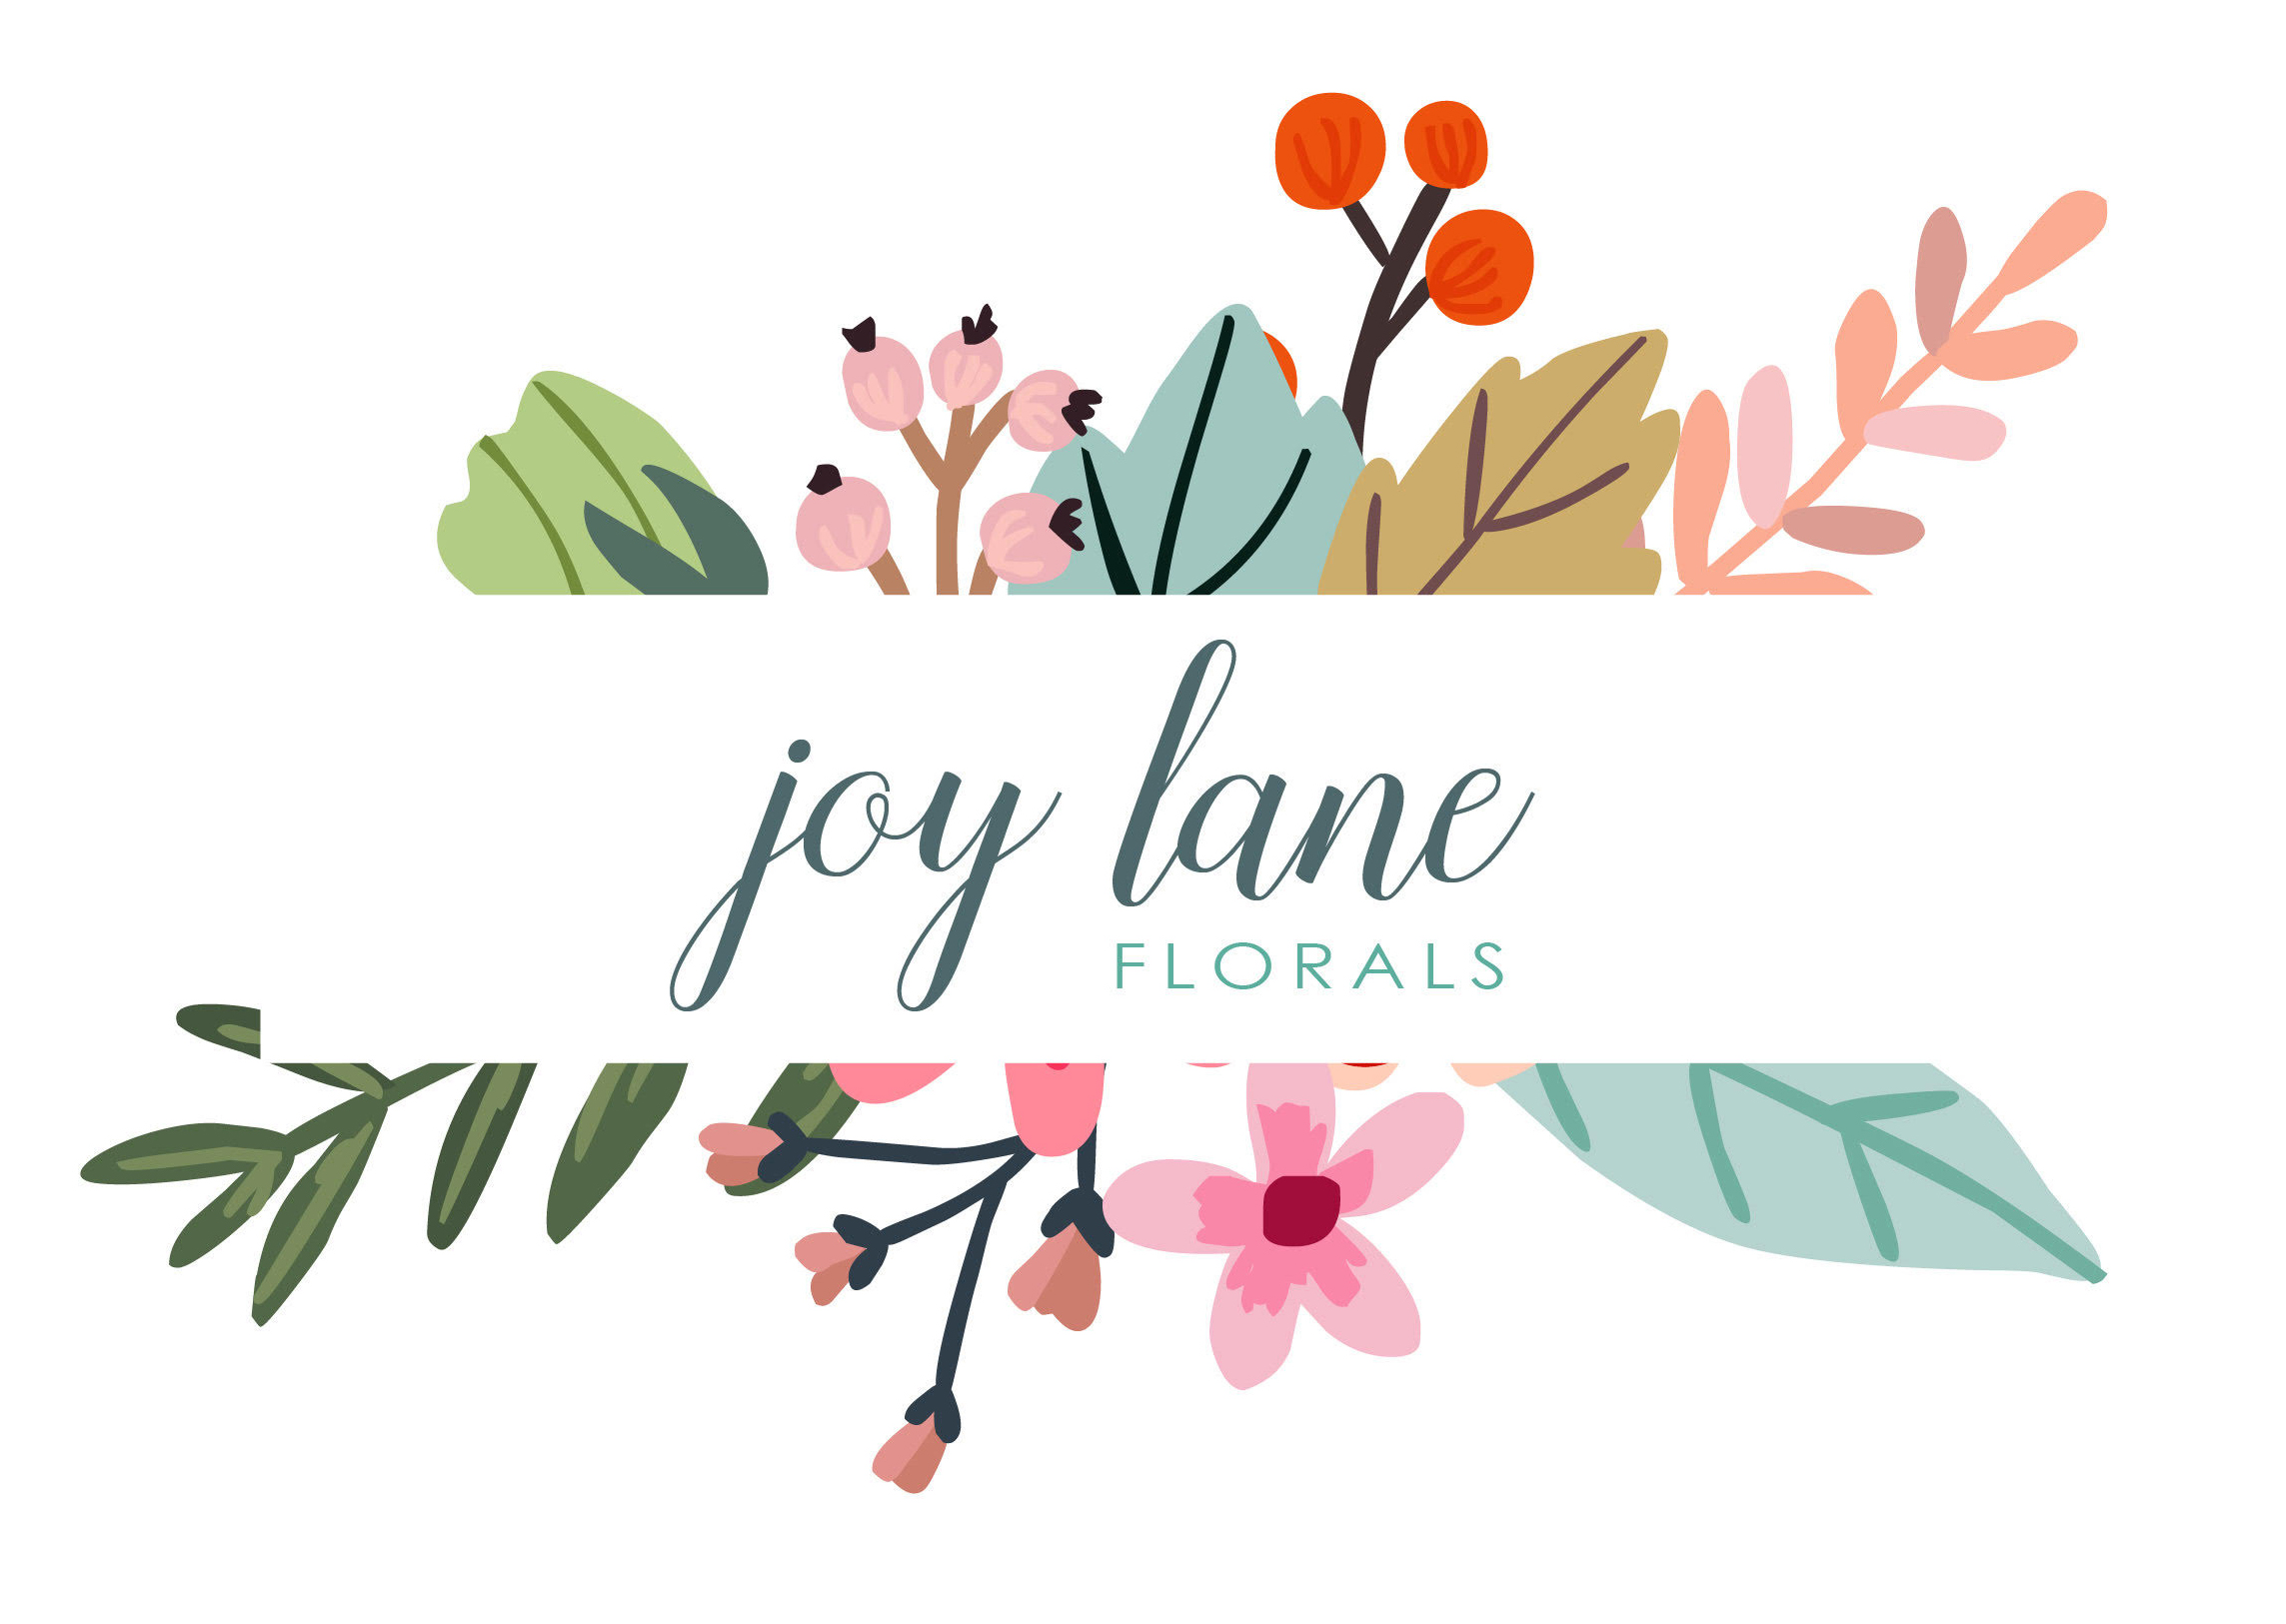 Joy Lane Florals